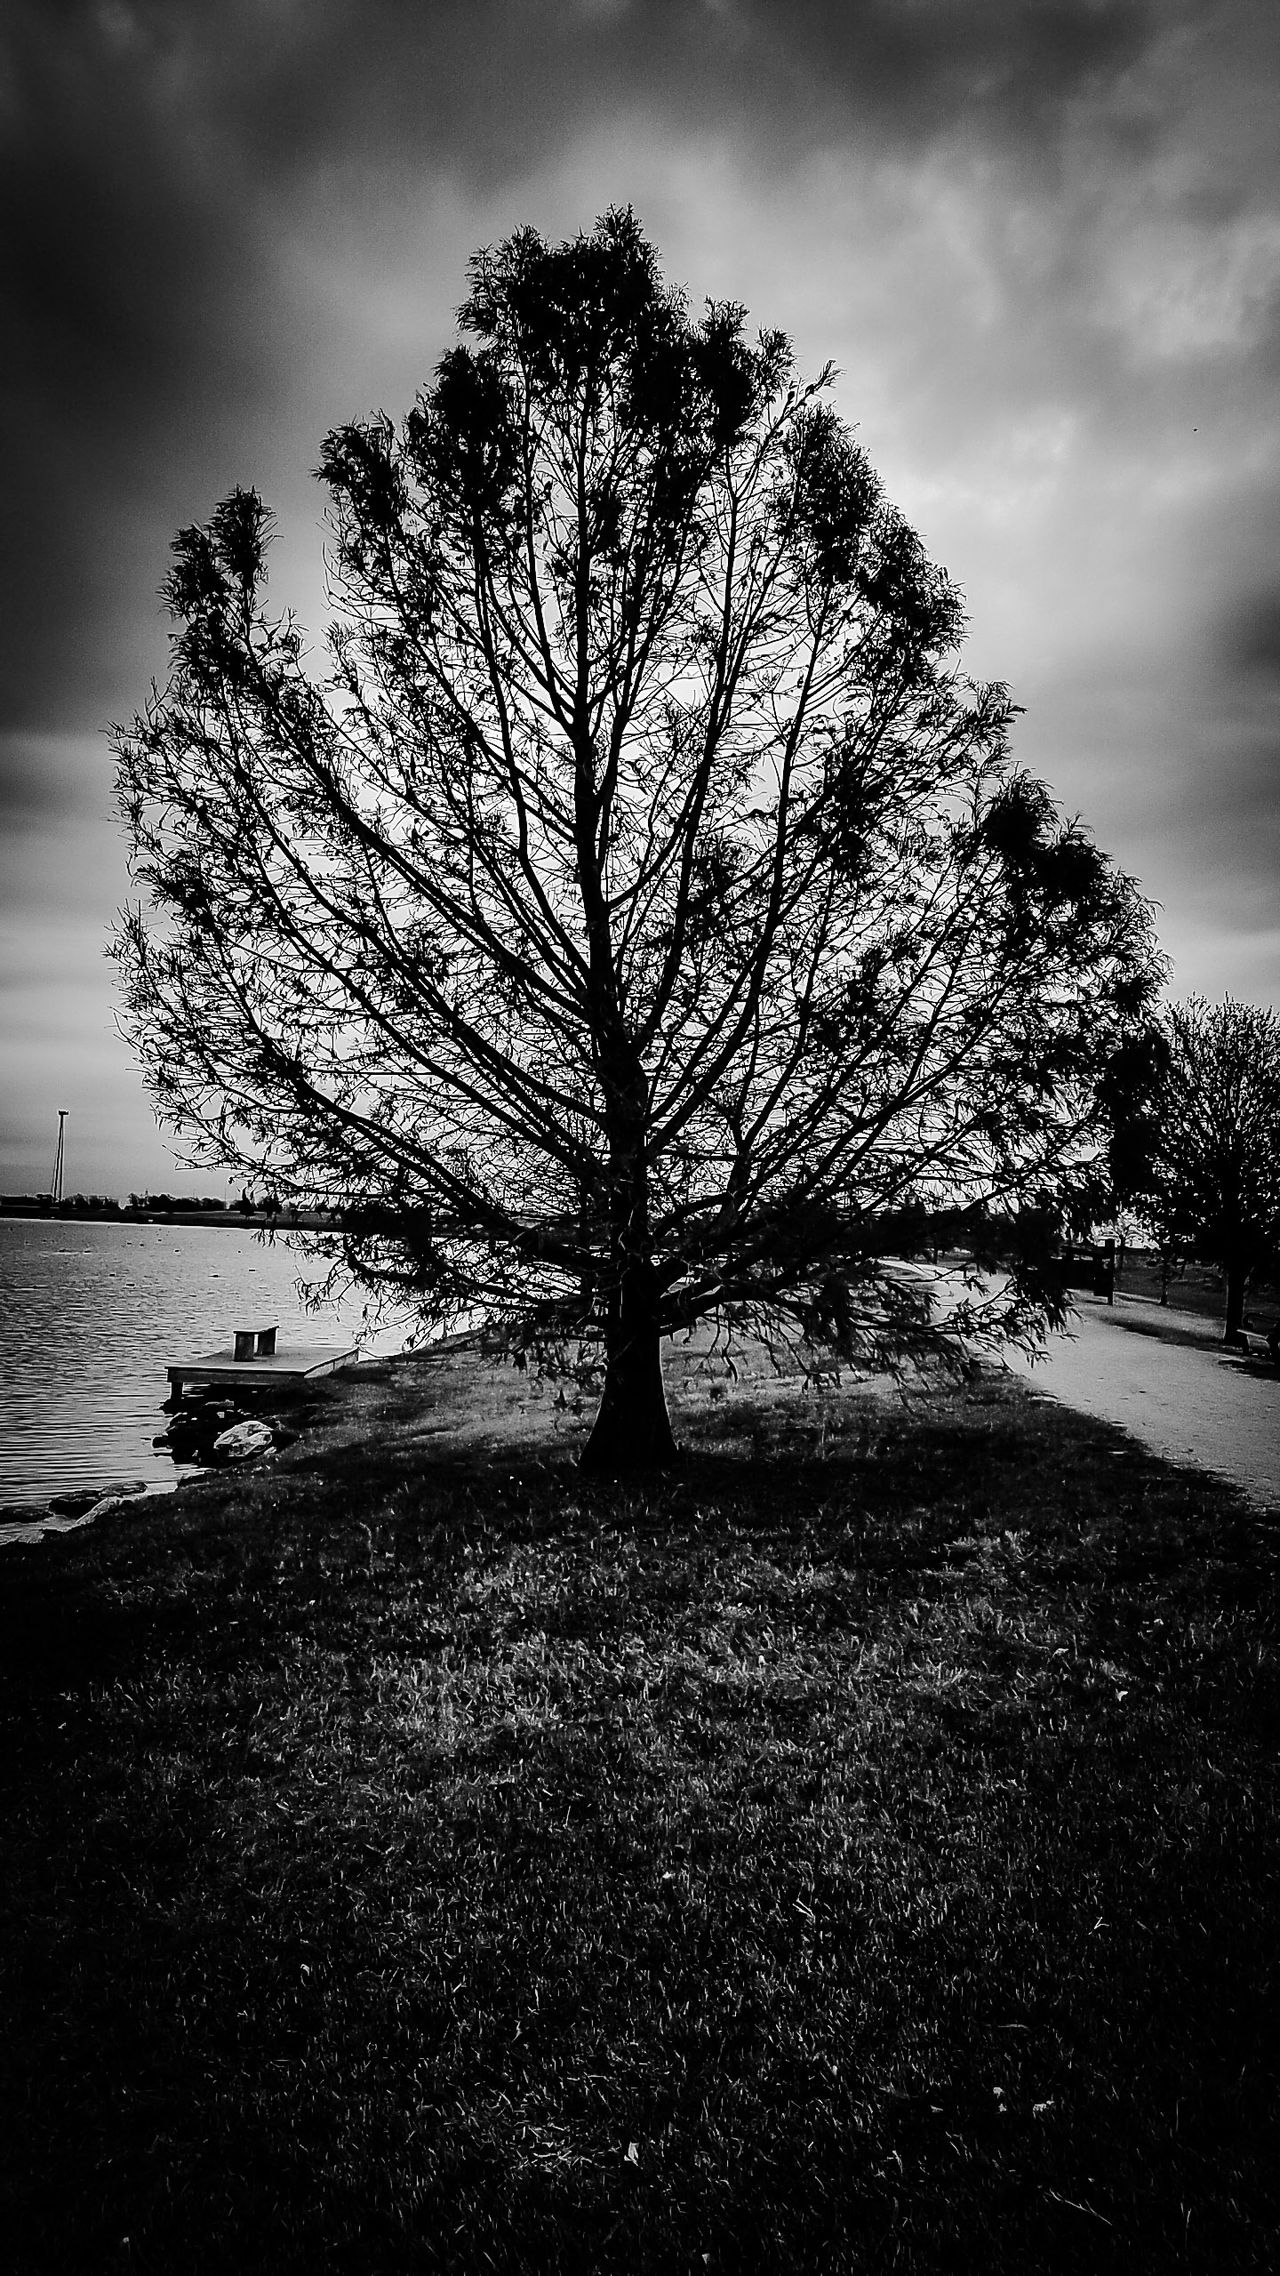 Tree Of Life ? Nature Cloud - Sky Tranquility Beauty In Nature Day Austin Texas No People Tree Blackandwhite_streetphotography B&W_collection Black And White Collection  Mother Nature Is Amazing Black & White Photography